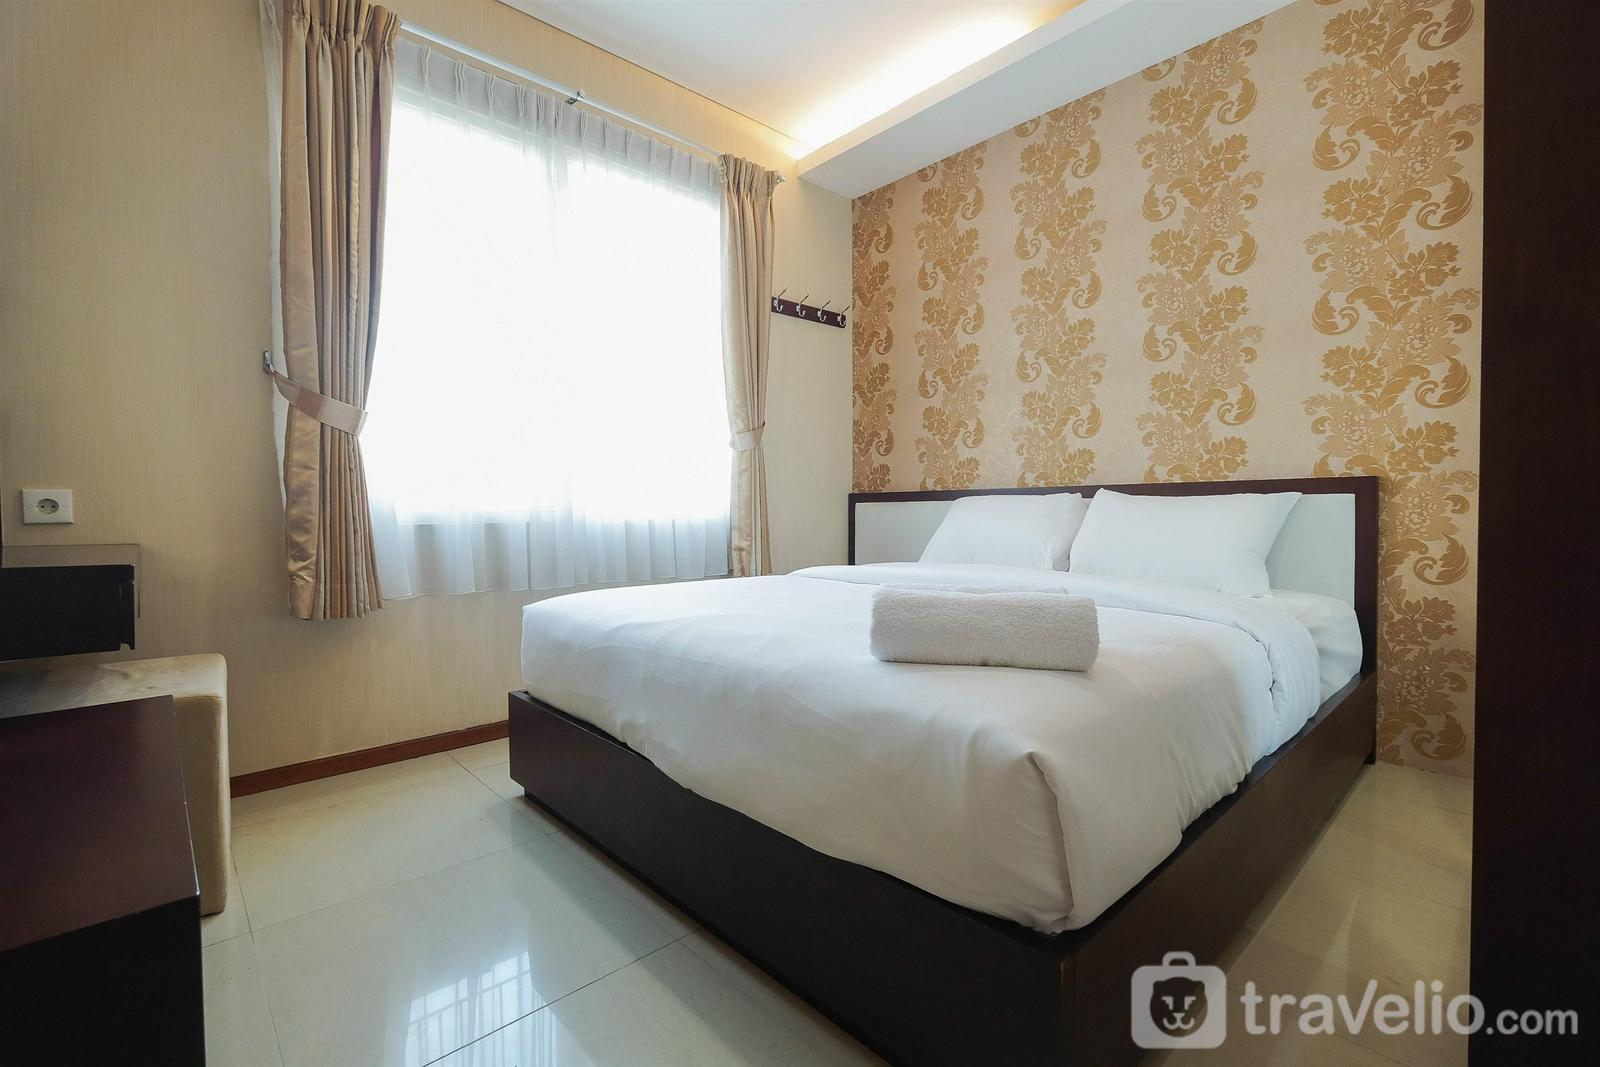 Thamrin Residence - Strategic 2BR Apartment @ Thamrin Residence By Travelio